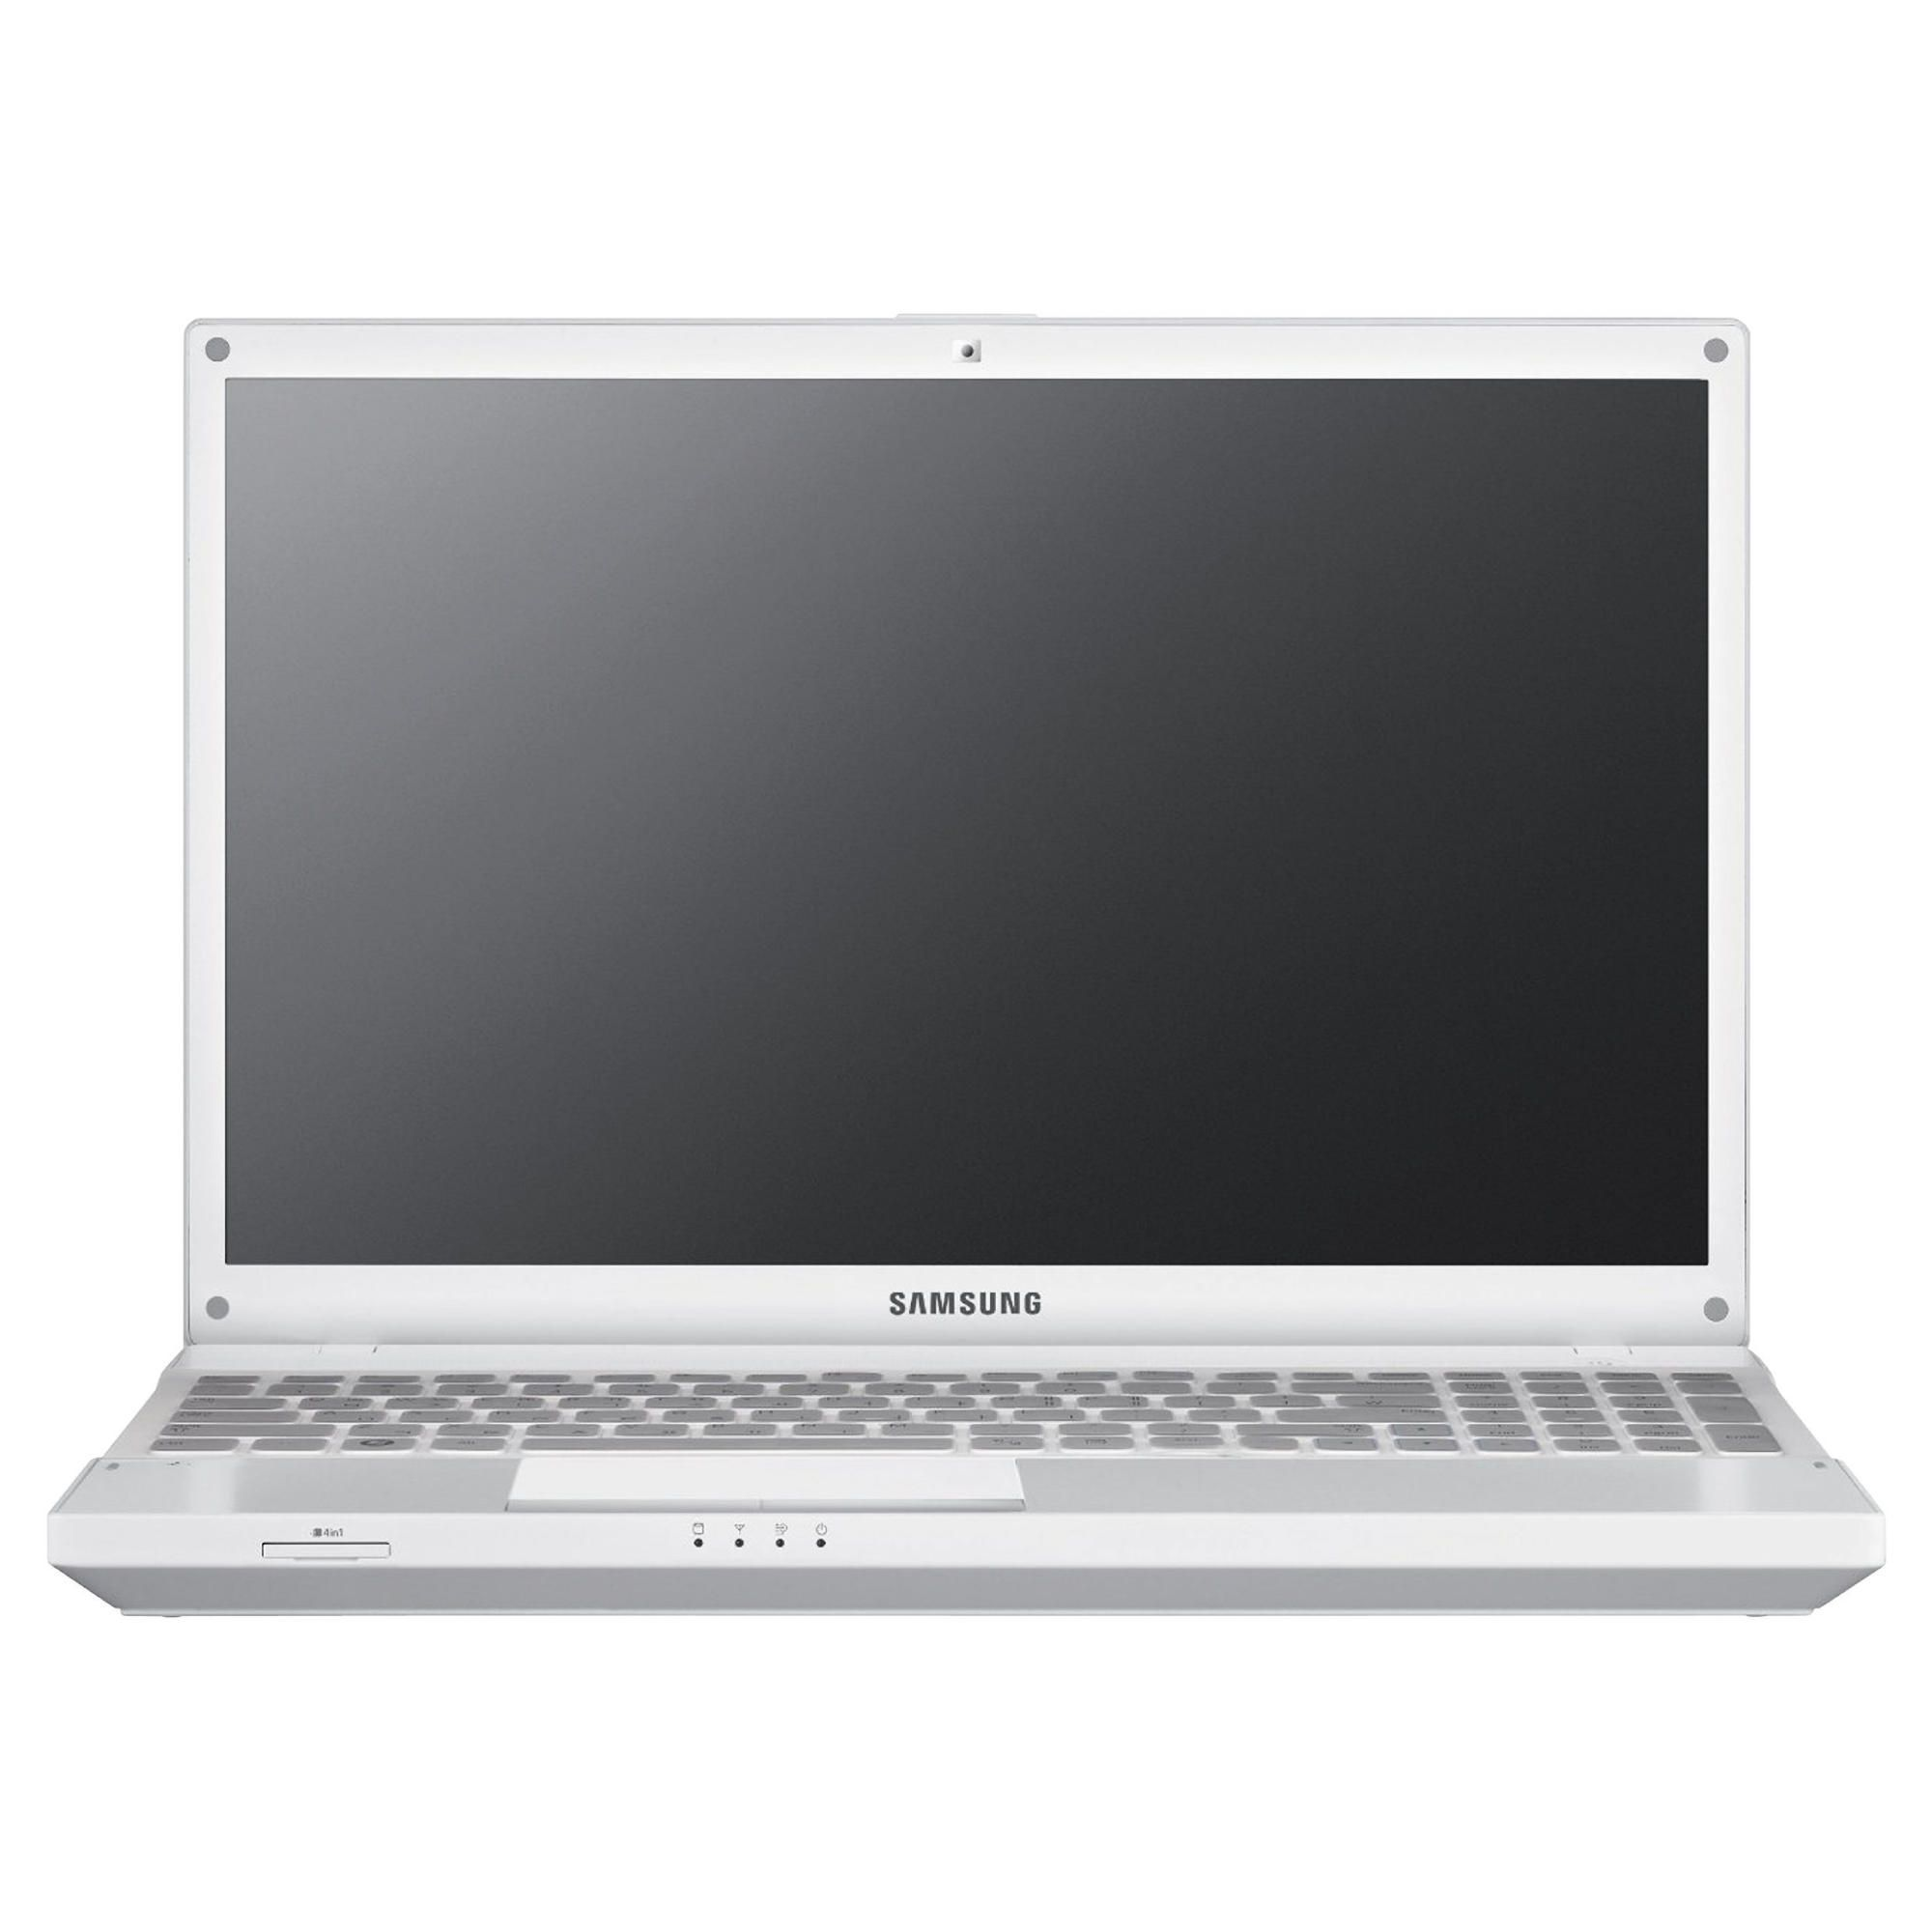 Samsung NP 300E 5A S01UK Laptop (Intel Core i5, 6GB, 500GB, 15.6'' Display) at Tescos Direct